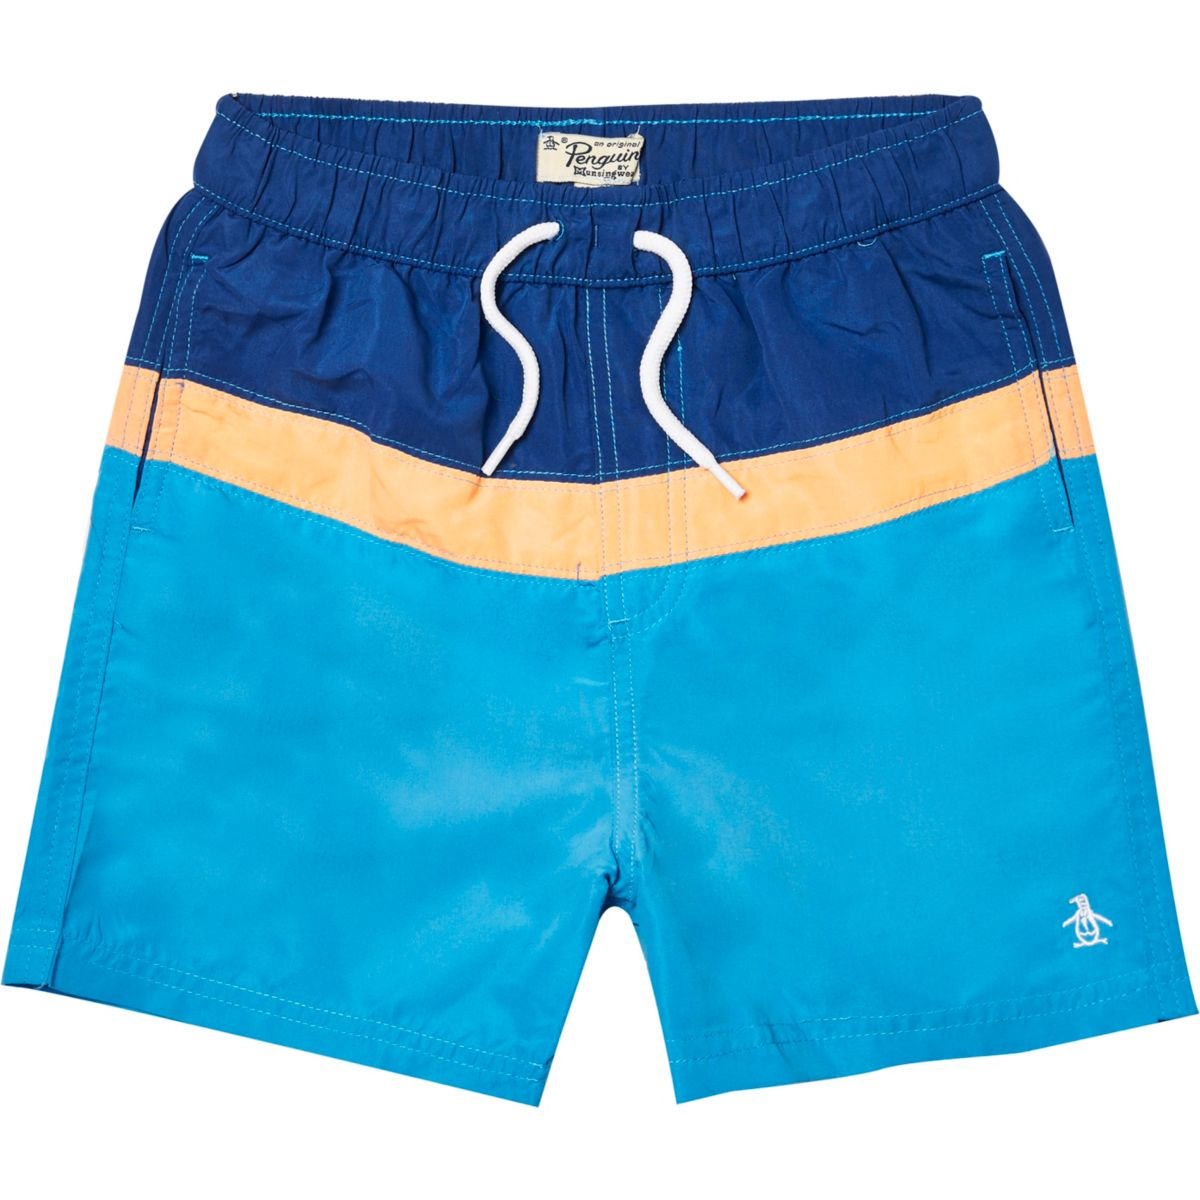 Boys blue Penguin colour block swim shorts